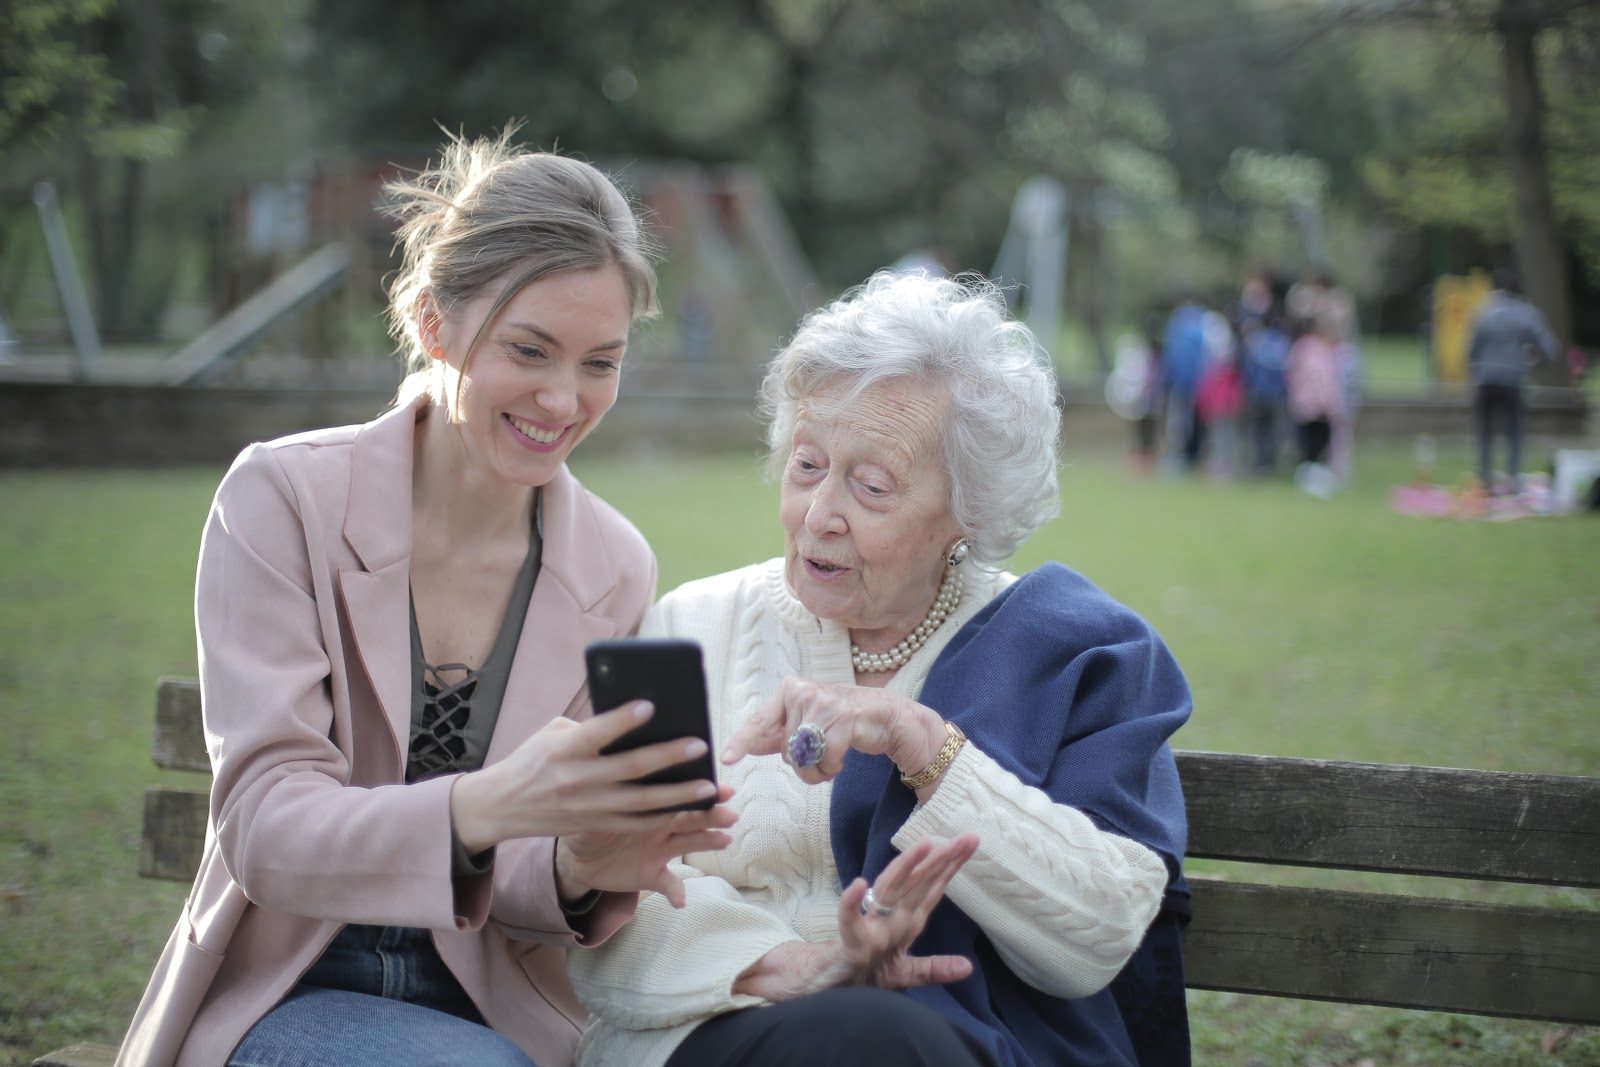 A young woman helping an elderly woman with technology to deal with anxiety